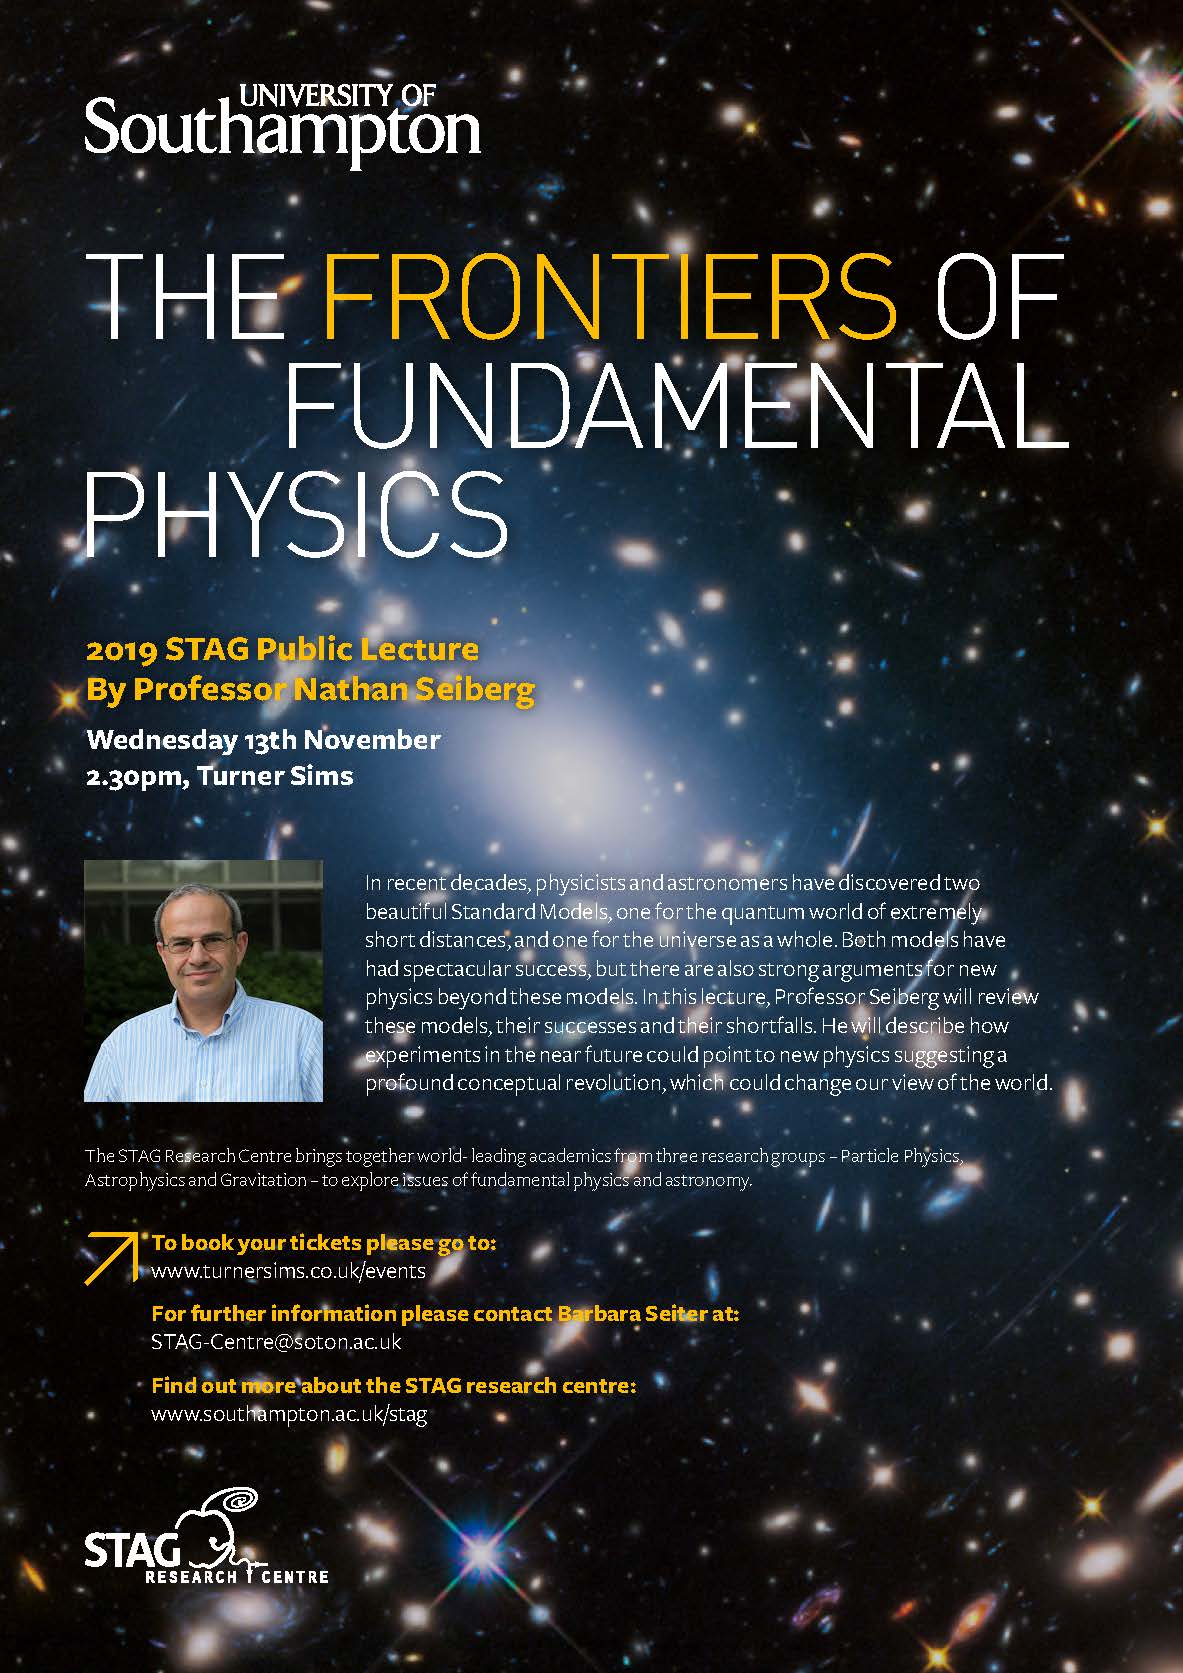 The Frontiers of Fundamental Physics - 2019 STAG Public Lecture